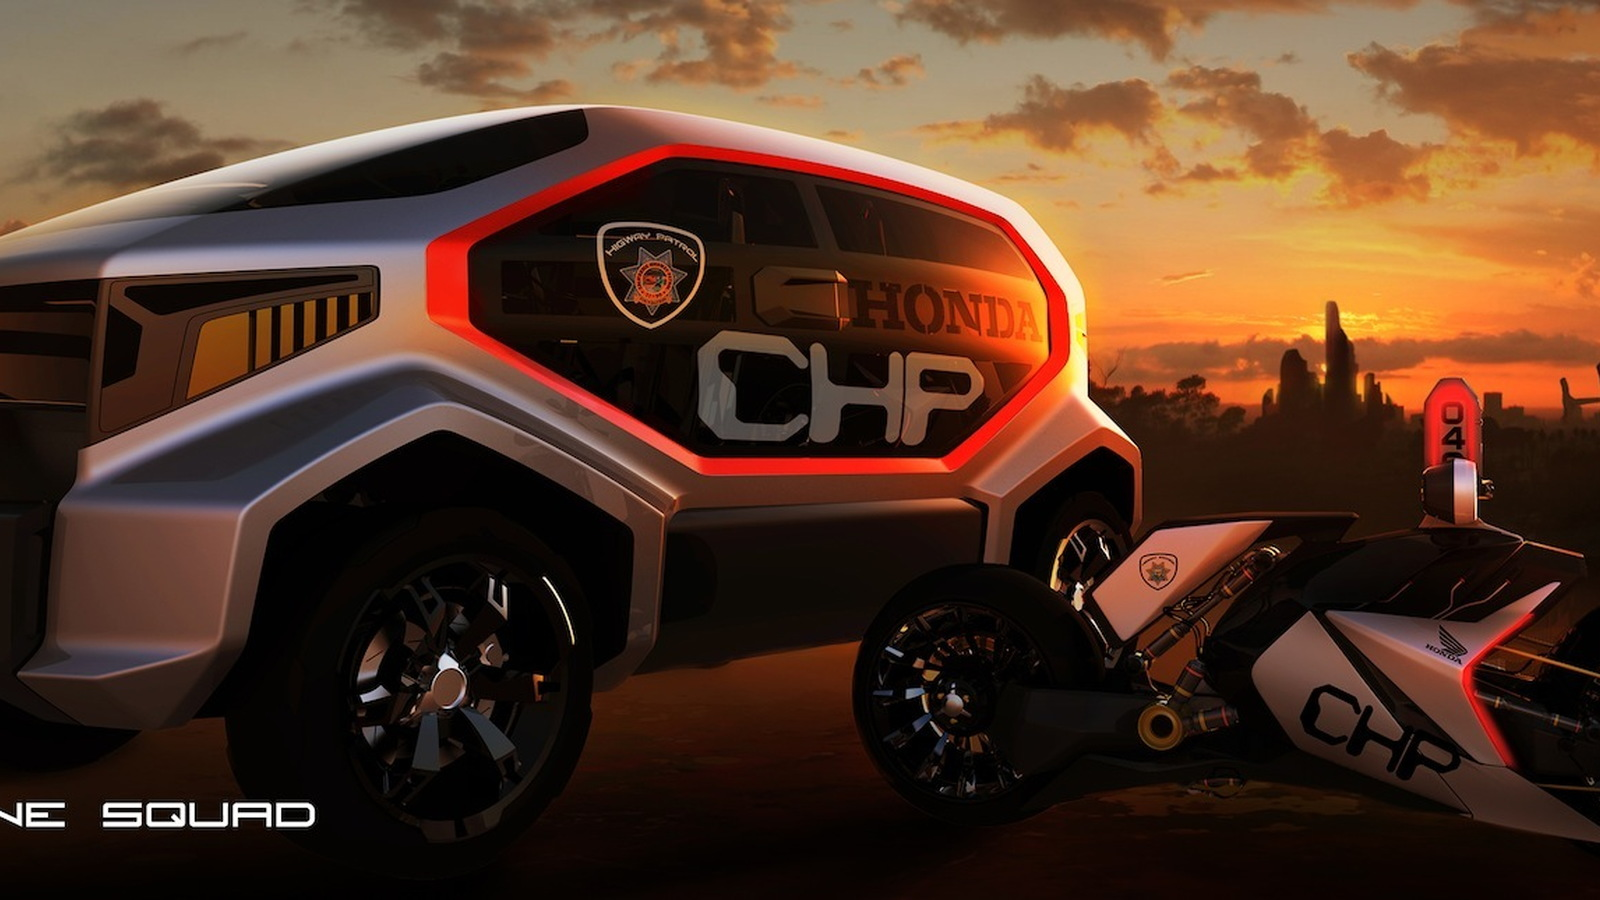 Entries into the 'Highway Patrol Vehicle of 2025' design challenge